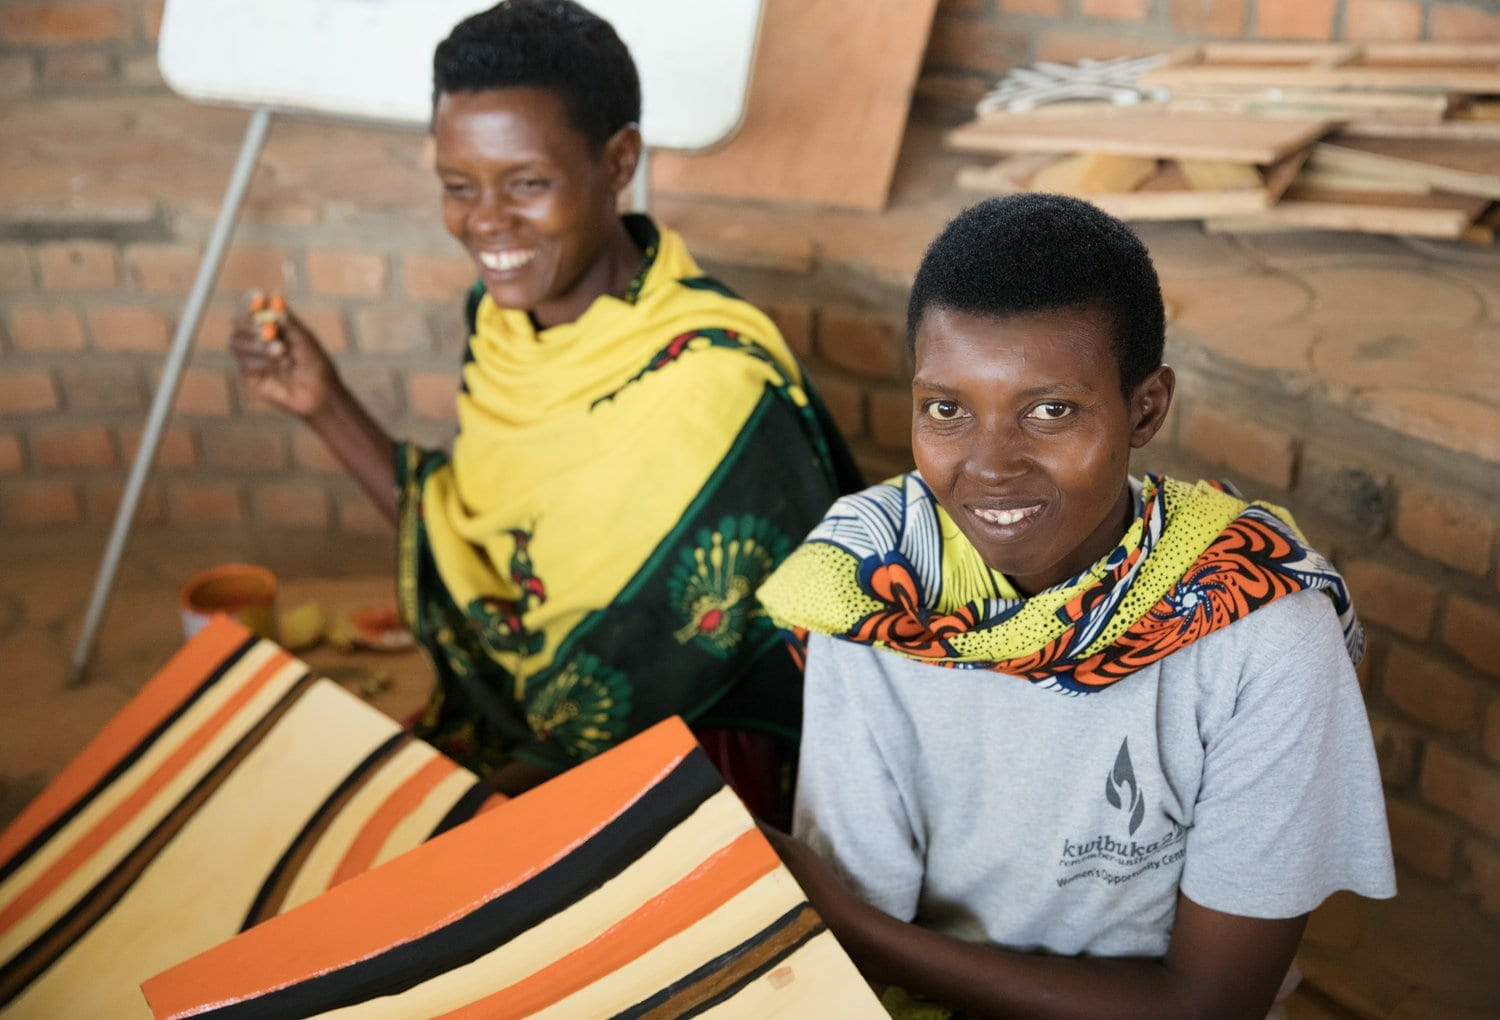 rwandan women making handmade products